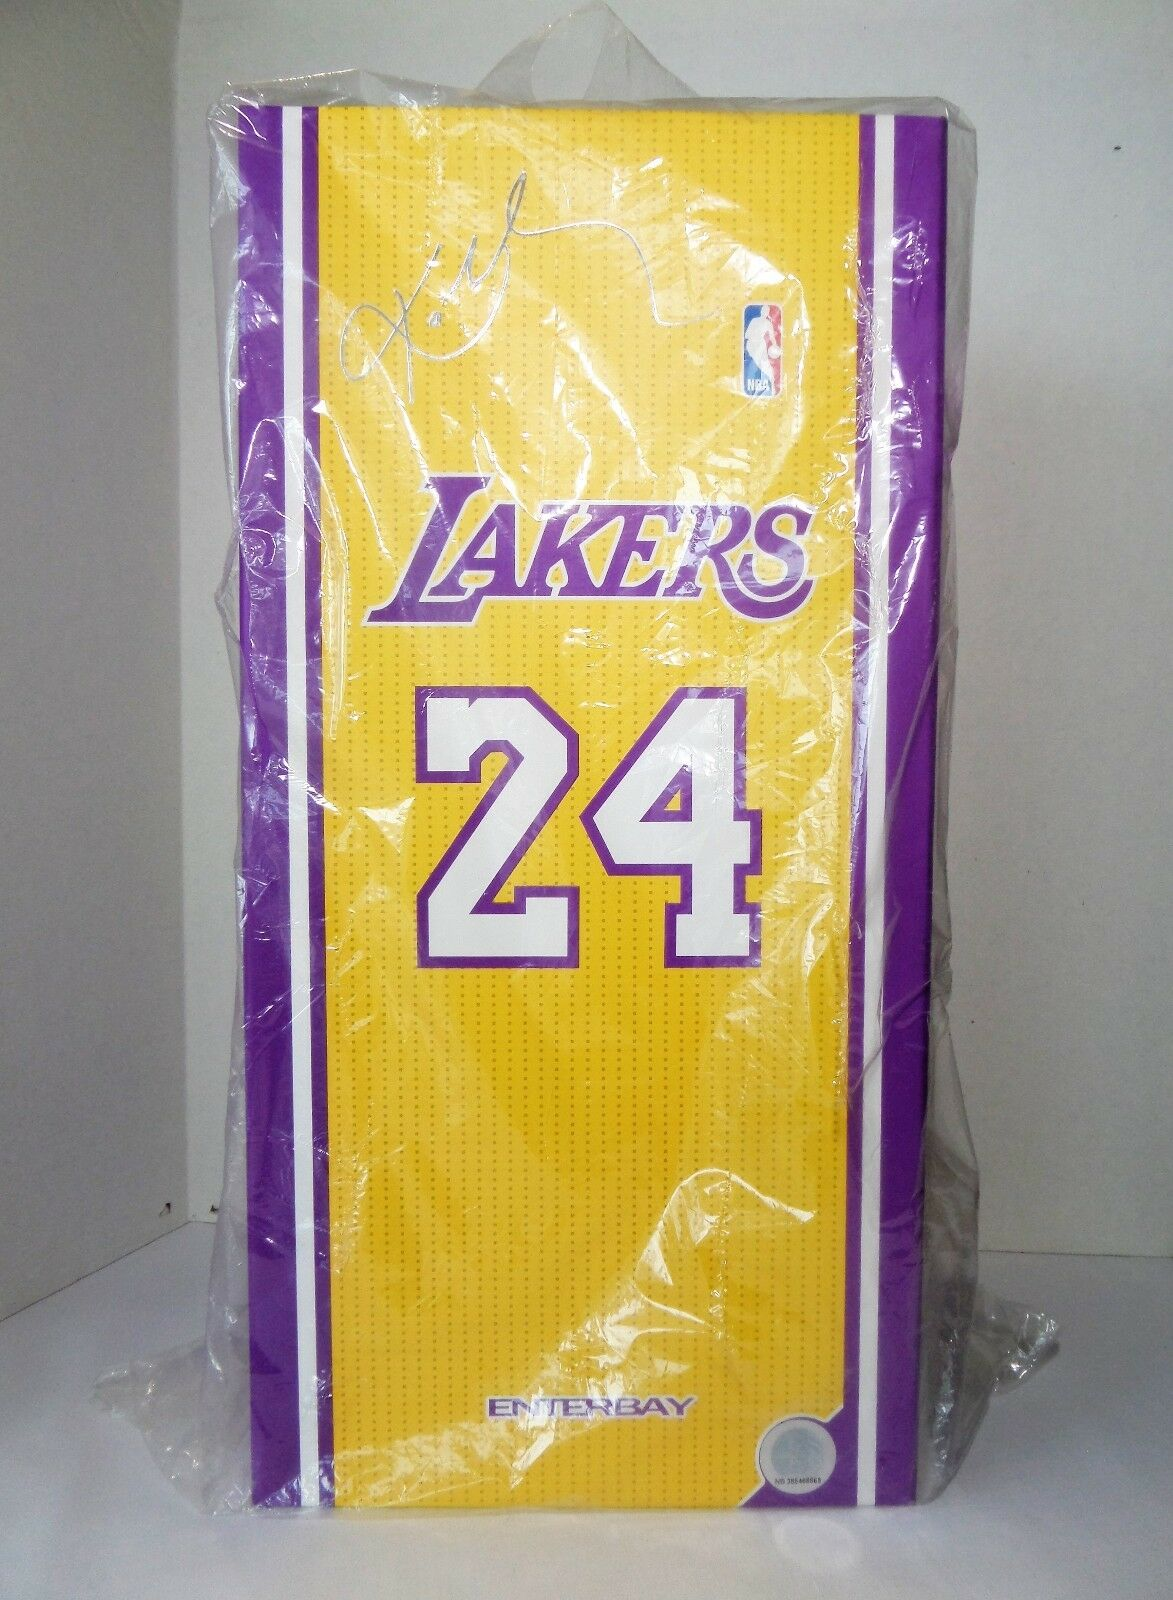 Enterbay NBA Real Masterpiece Kobe Bryant Ver. 2.0 1 6 Scale Figure